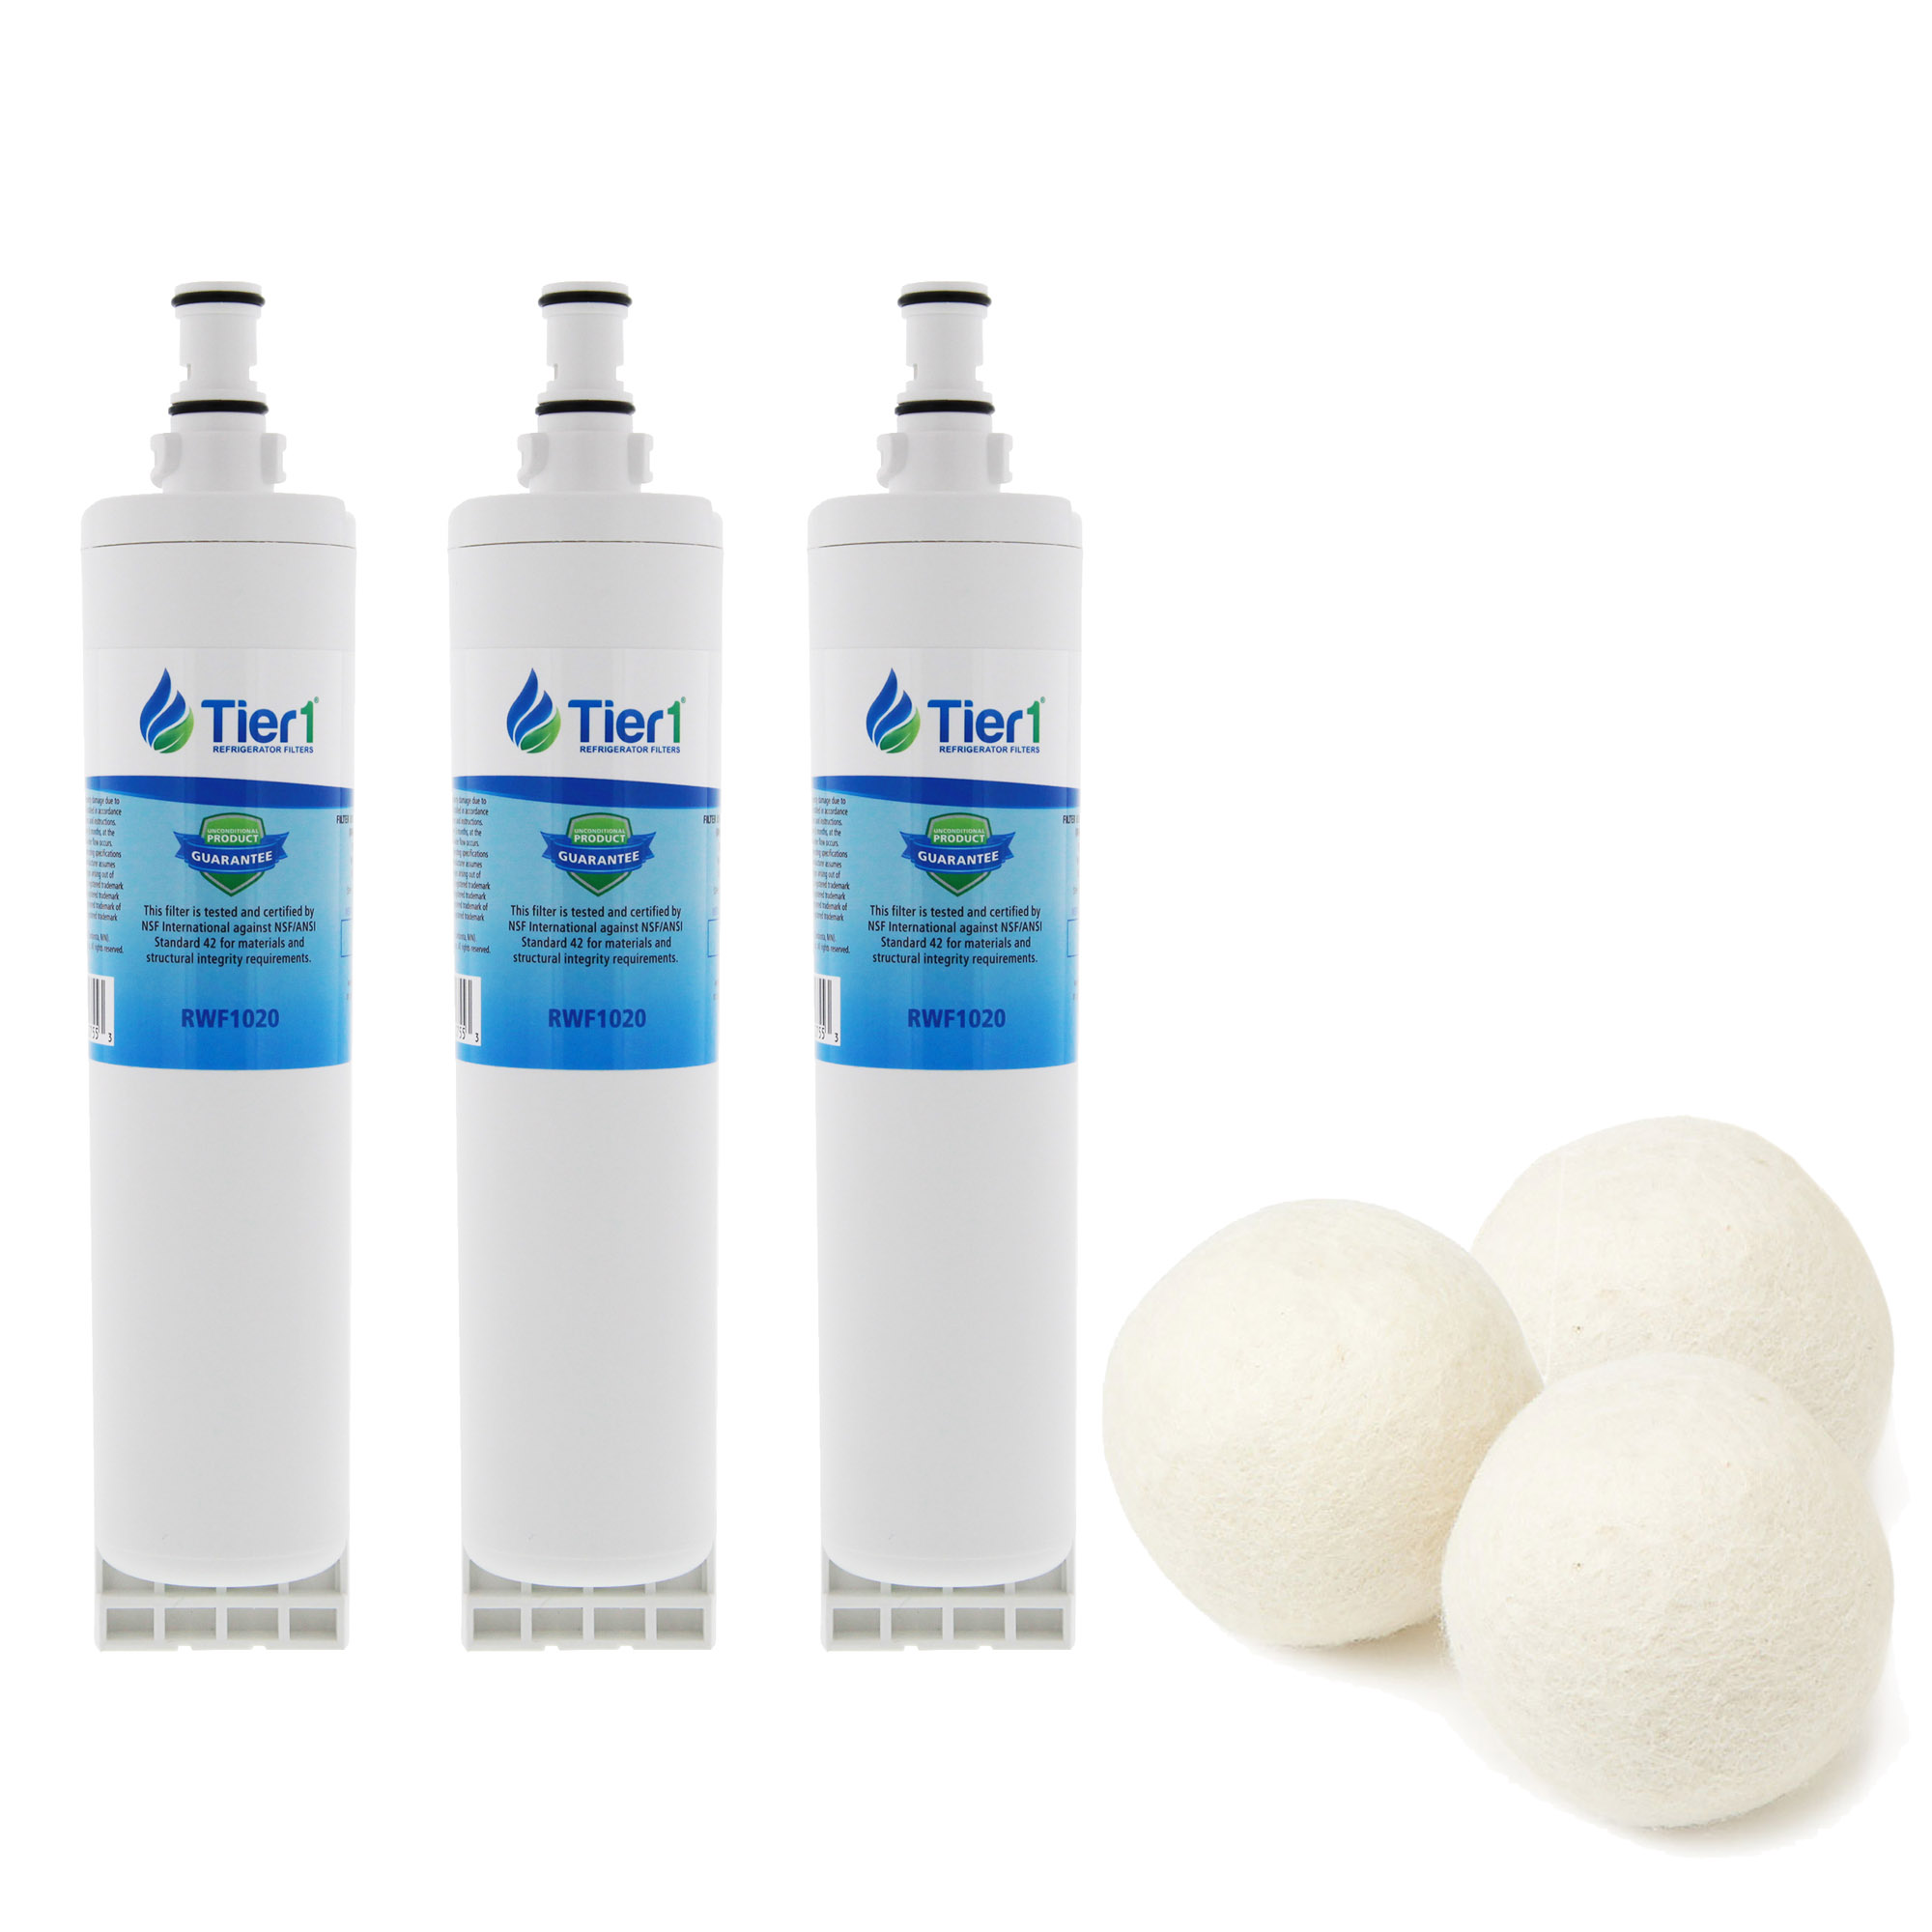 Tier1 Replacement for EveryDrop EDR5RXD1 4396508/4396510 Whirlpool  Comparable Refrigerator Water Filter Bundled with Fabric Softening Wool  Dryer Balls